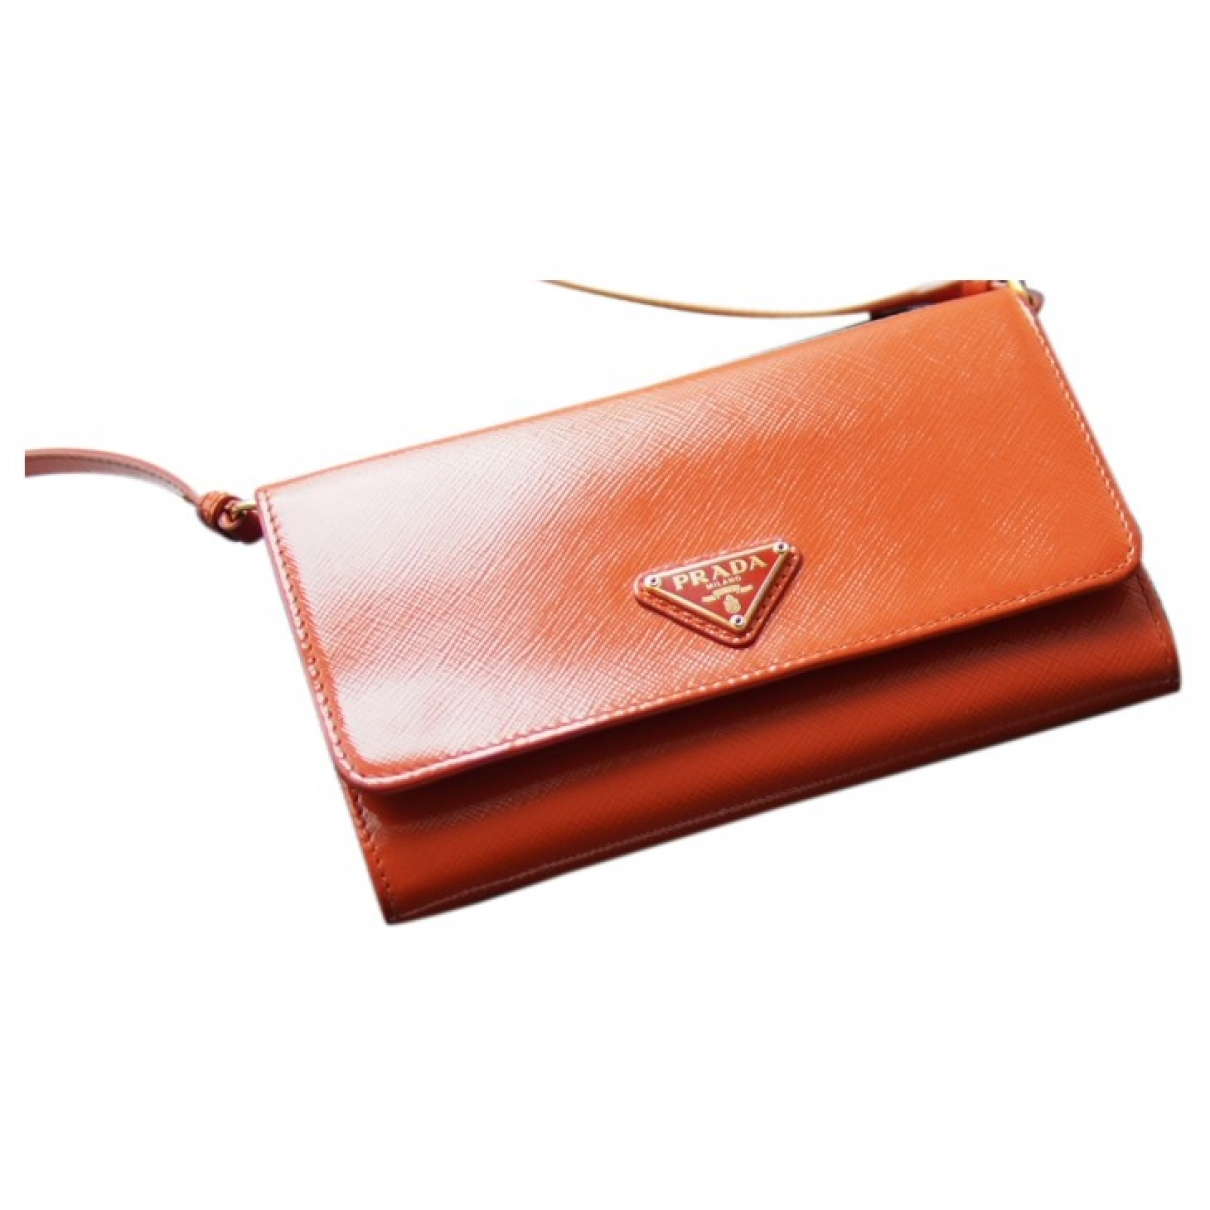 Prada \N Orange Leather Clutch bag for Women \N